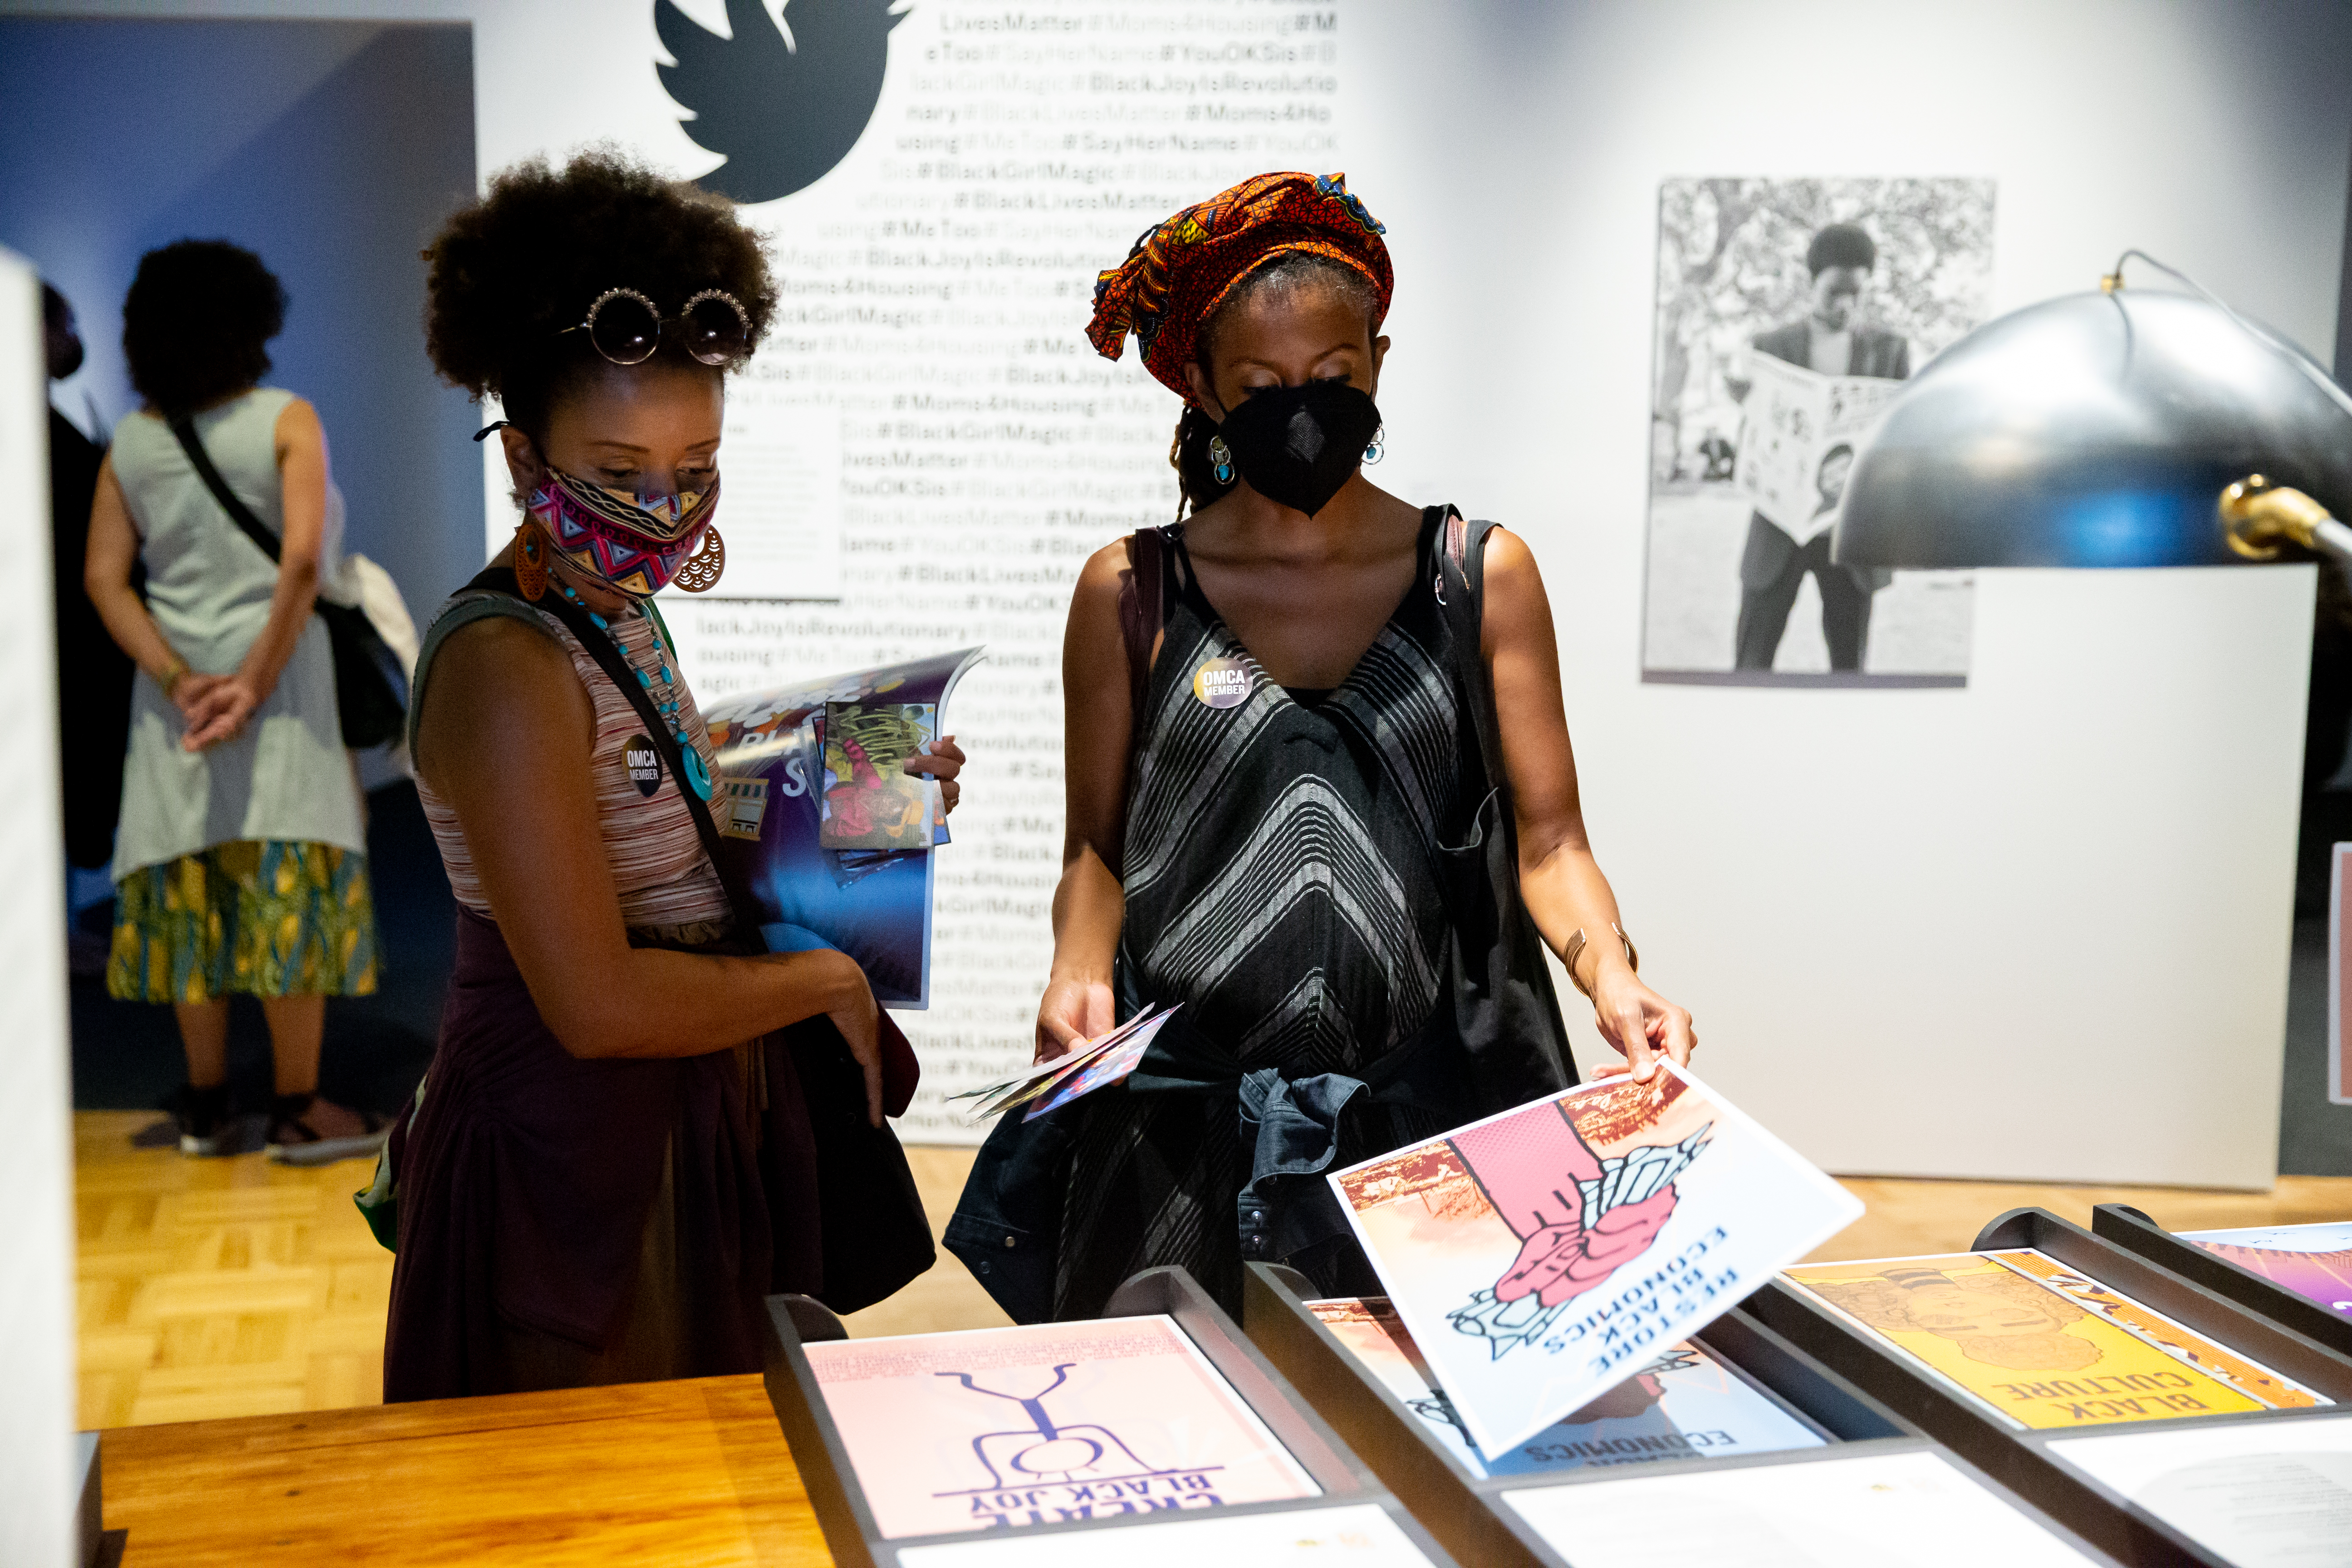 Two women wearing masks collect posters at the Mothership exhibit.